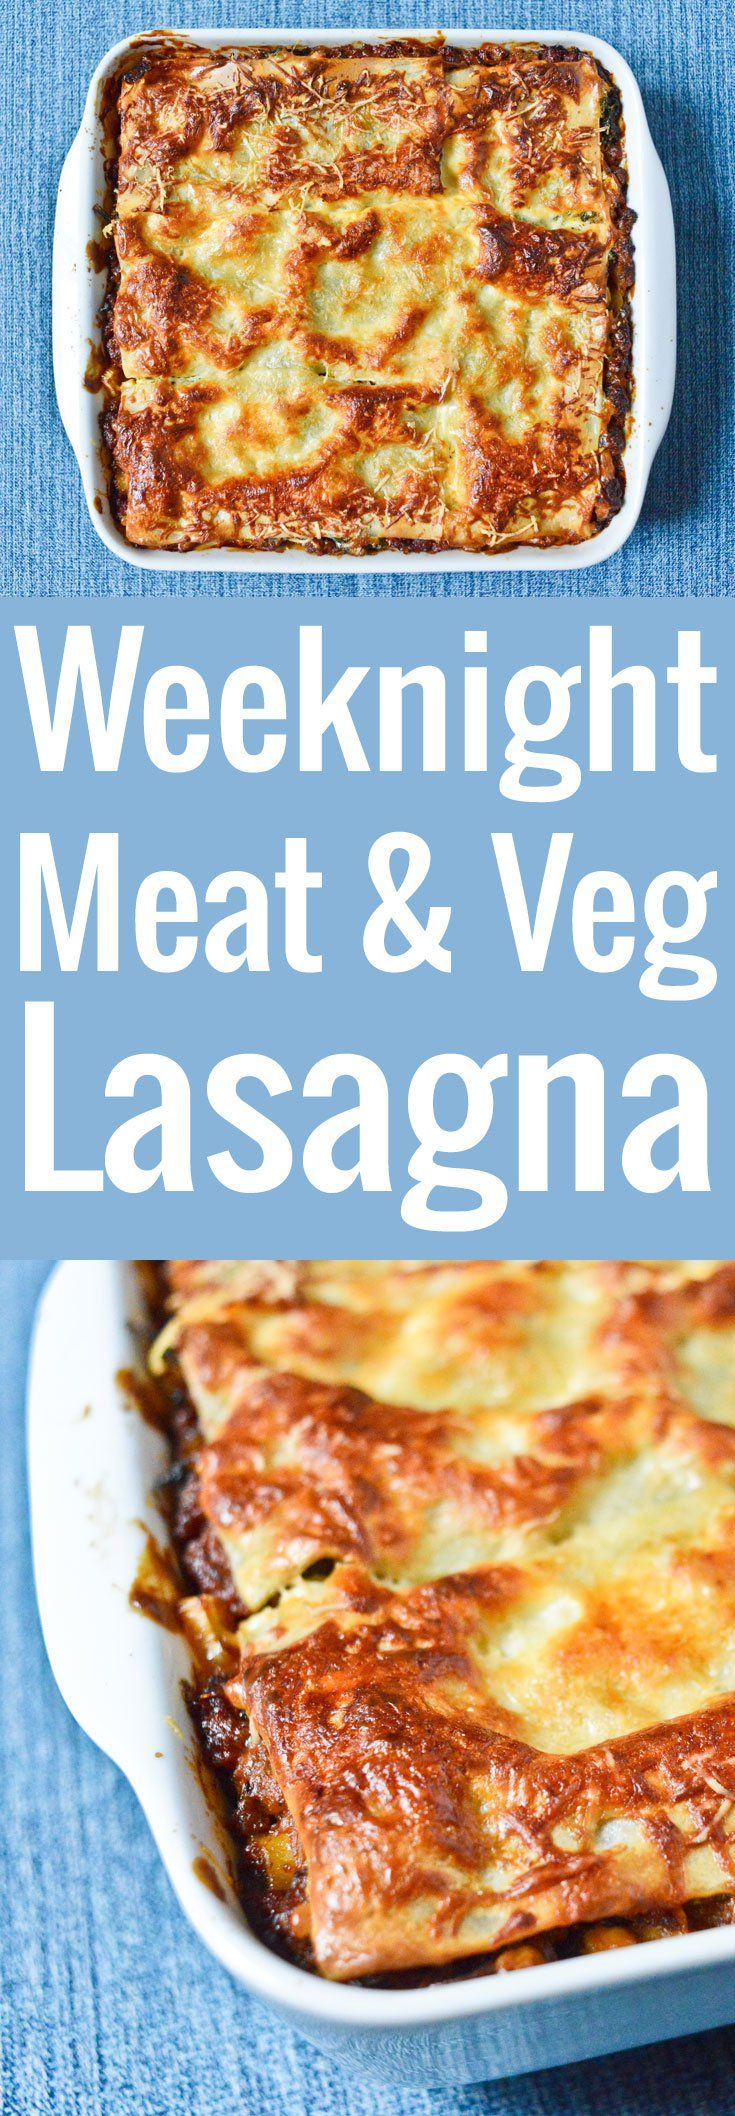 A fabulous recipe for a sumptuous lasagna, with plenty of flavorful vegetables for a super satisfying weeknight dinner.